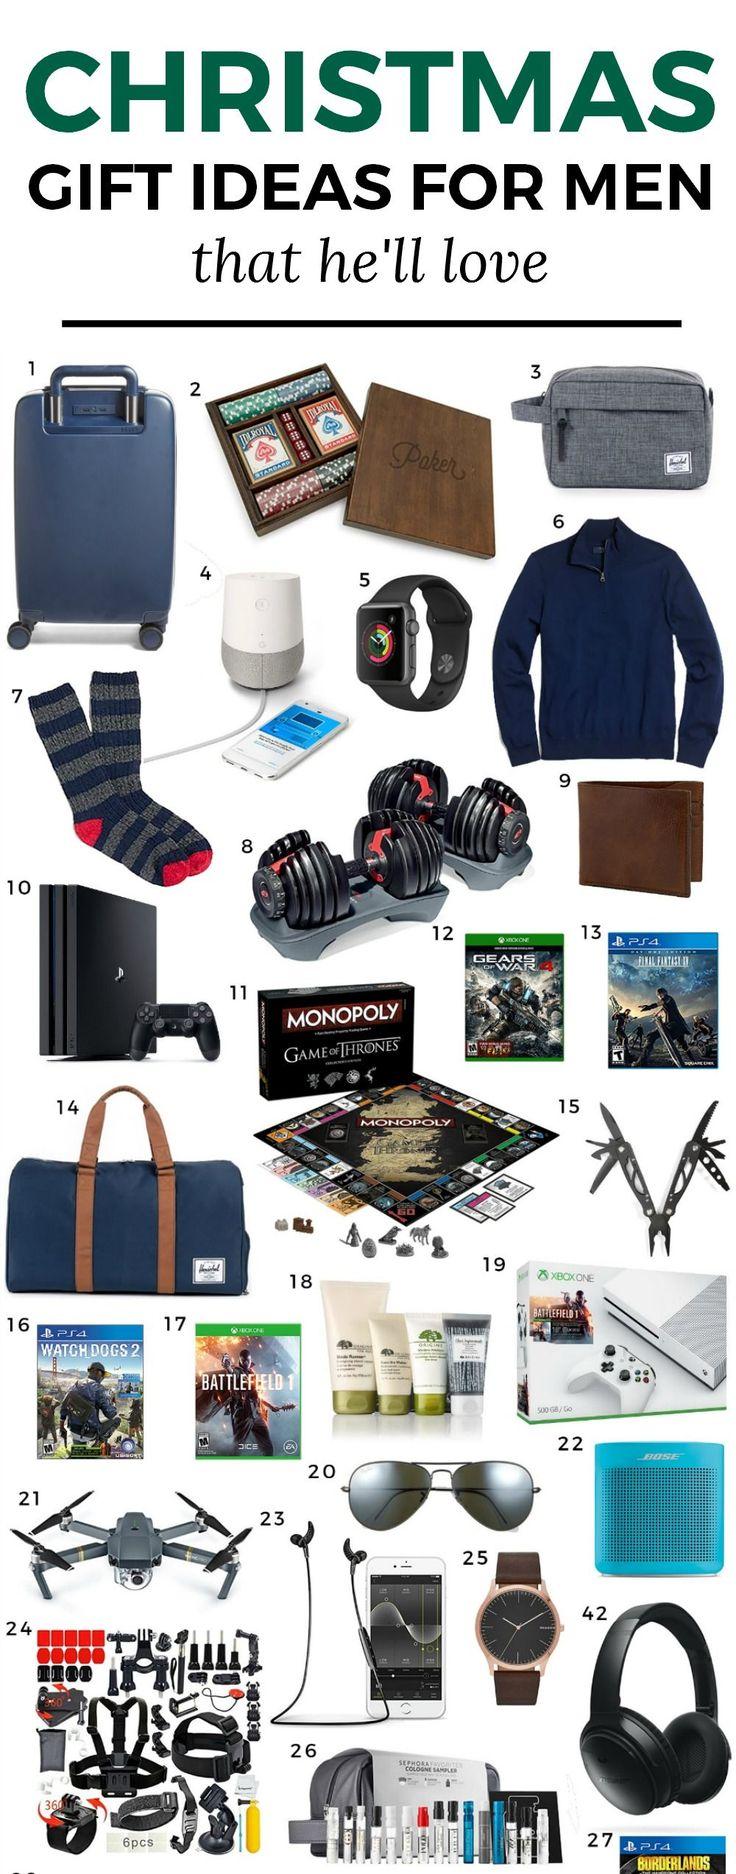 The Best Christmas Gift Ideas for Men | The ultimate Christmas gift guide for men by blogger Ashley Brooke Nicholas featuring man-approved gift ideas | Christmas gifts, holiday gifts, gifts for men